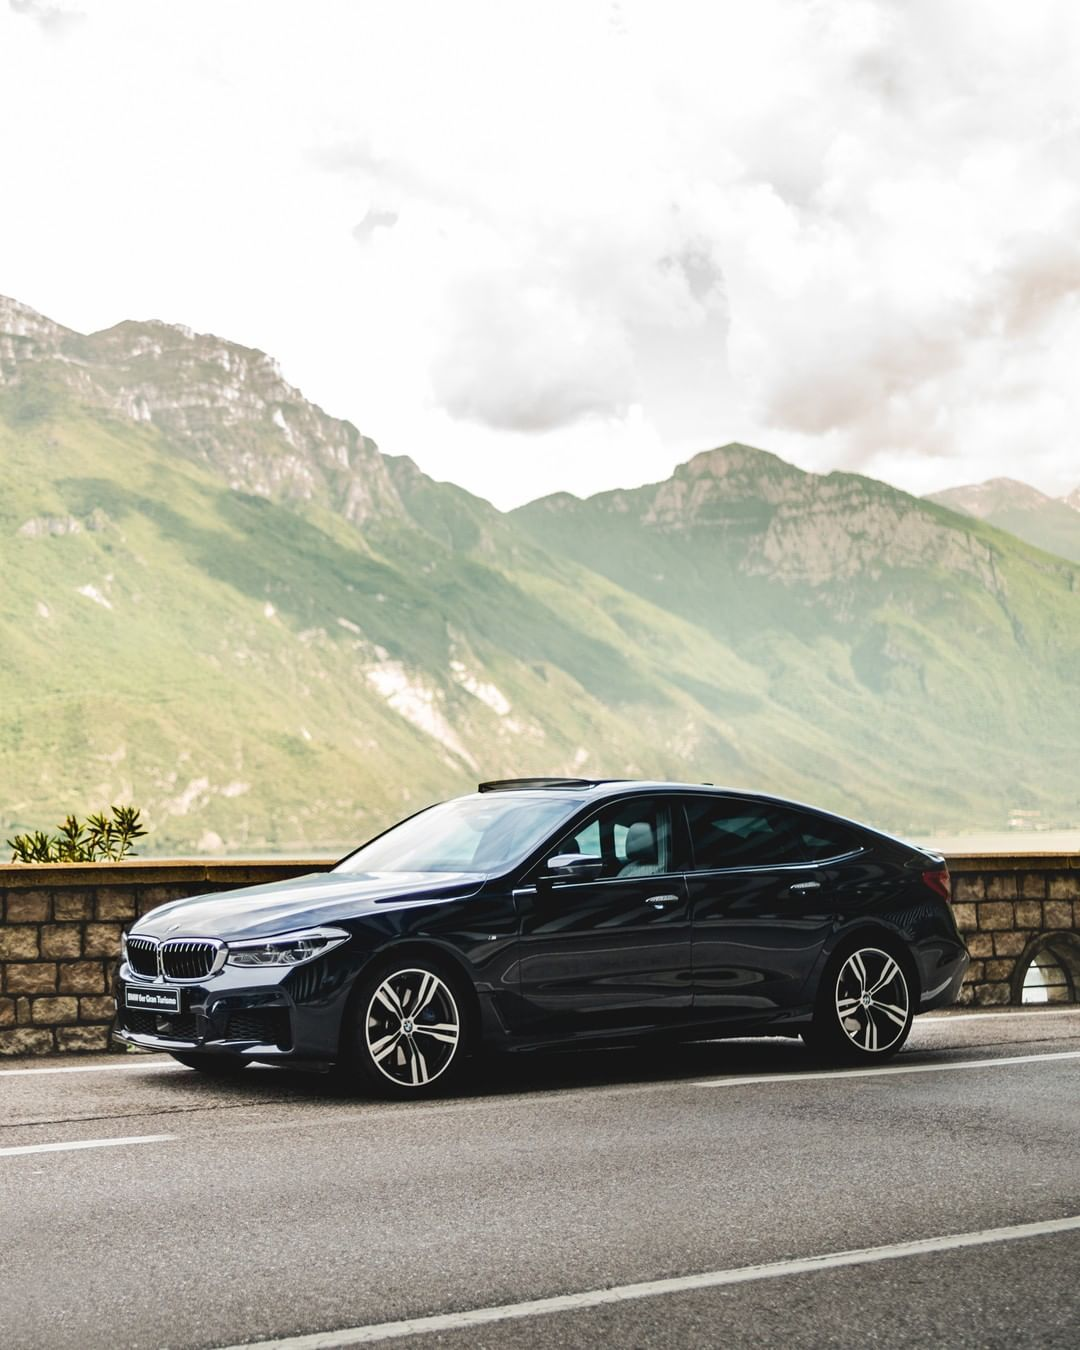 Taking The High Road Will Pay Off The Bmw 6 Series Gran Turismo